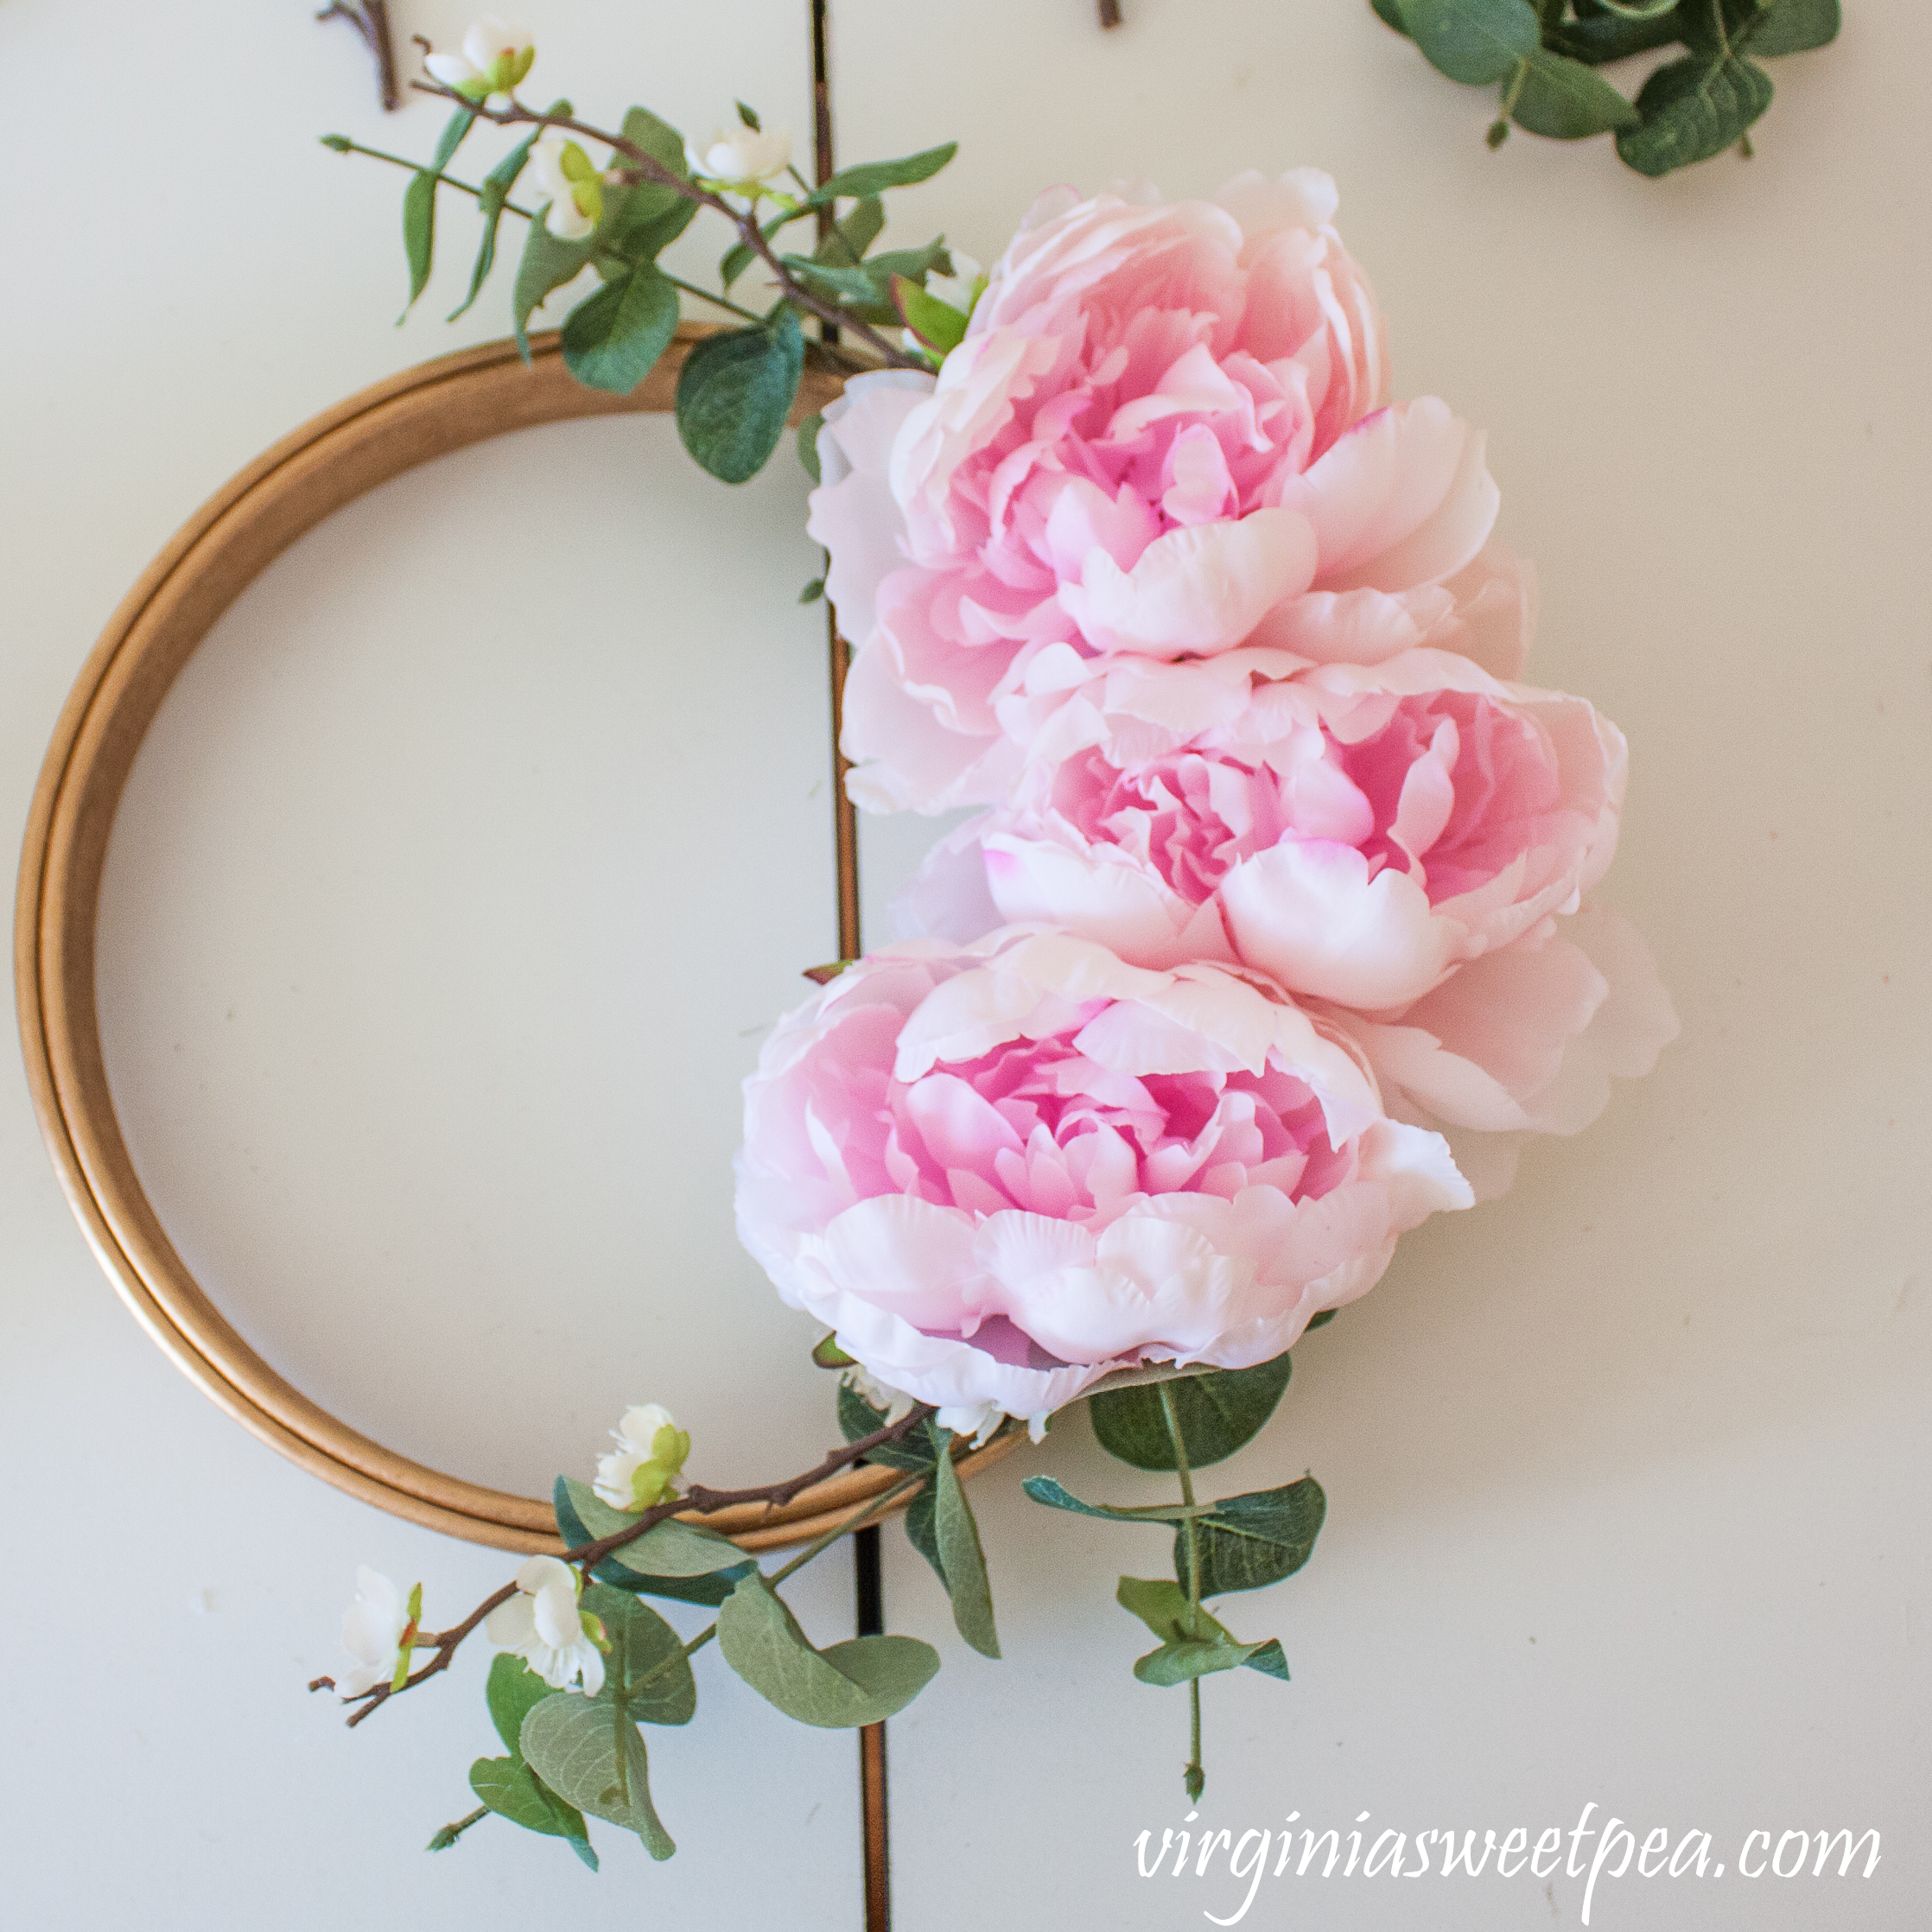 Step-by-step tutorial to make a spring embroidery hoop wreath